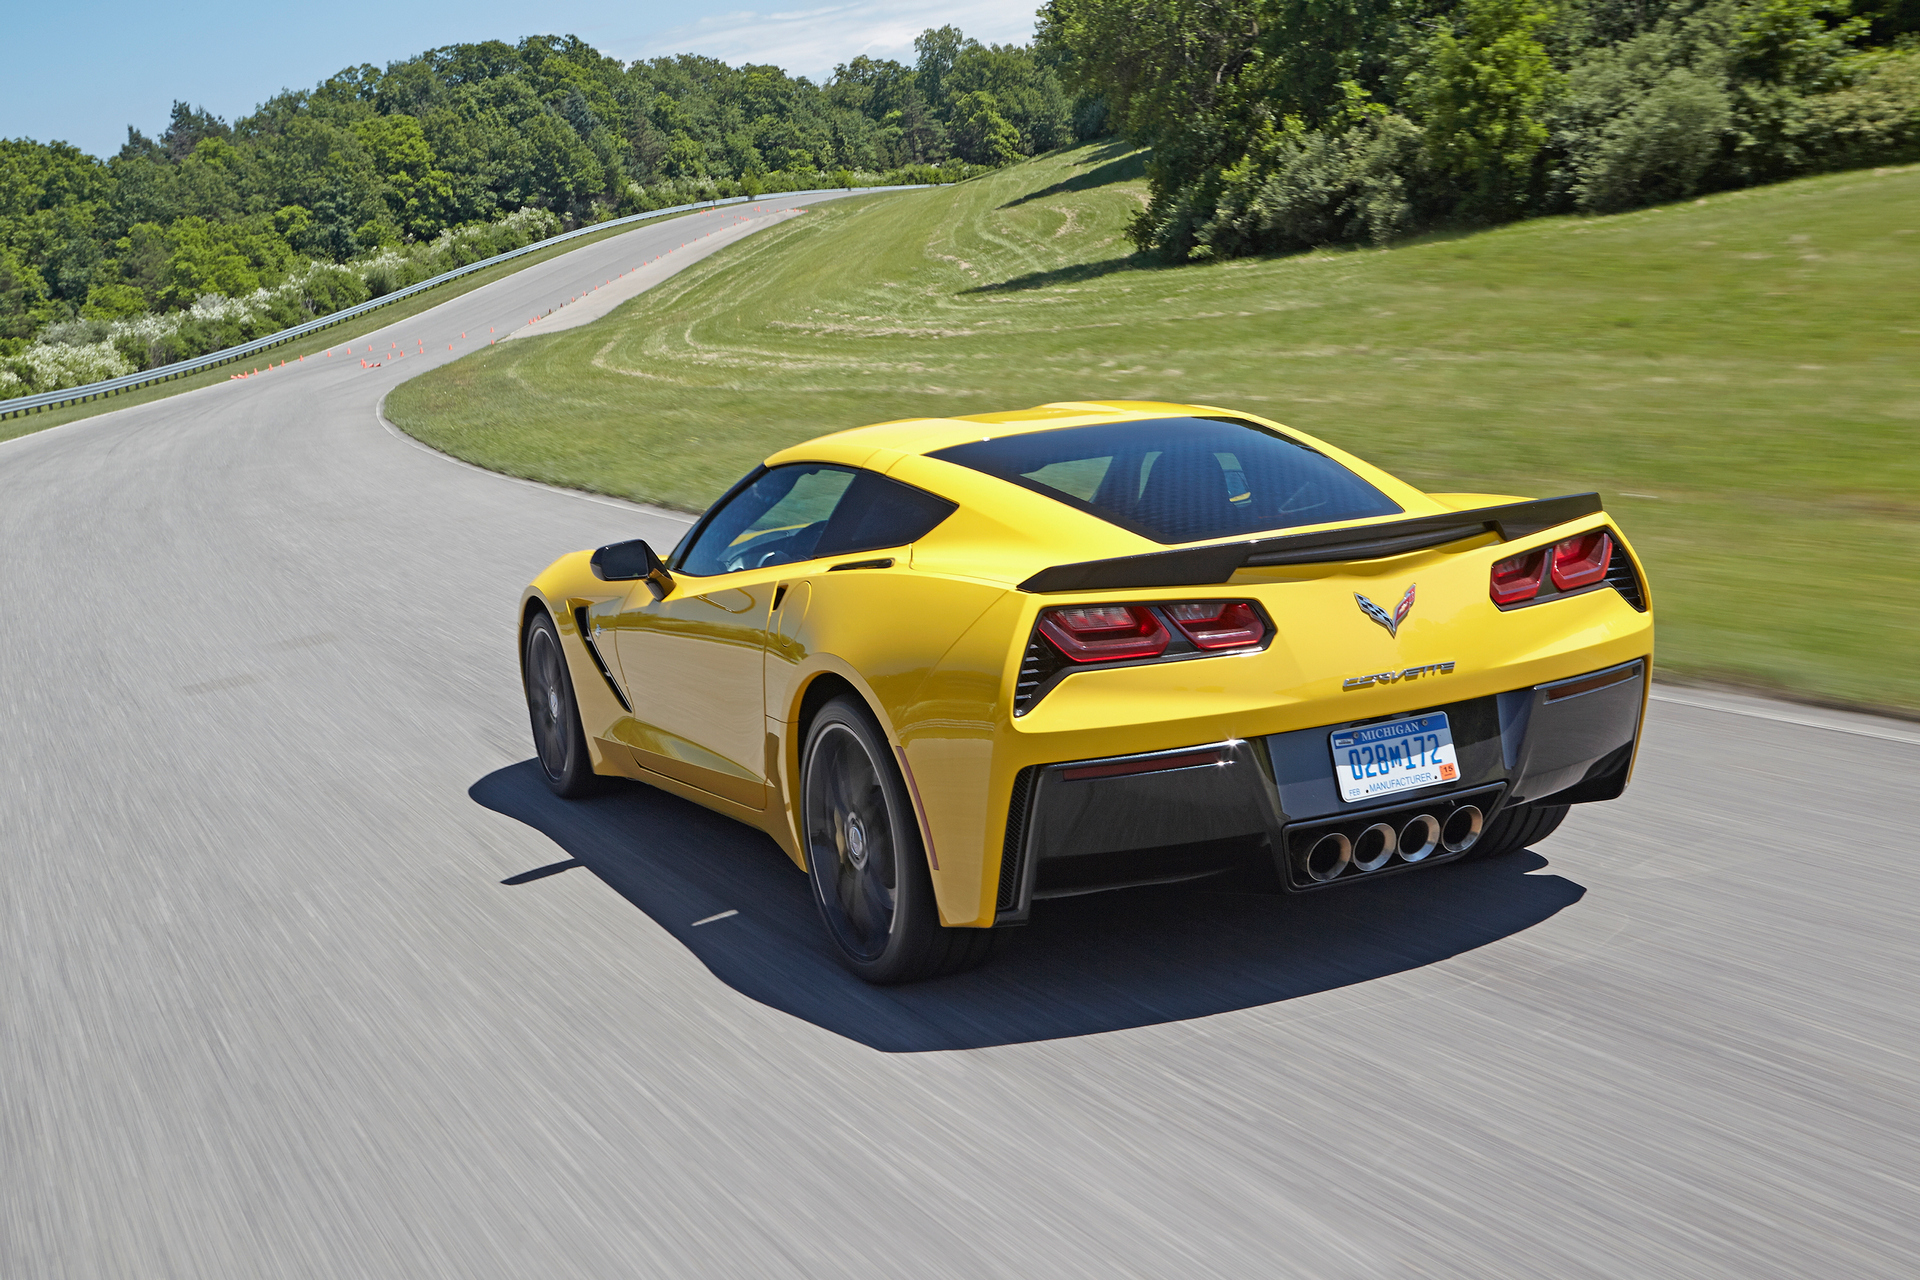 How Much Does A Chevy Corvette Cost